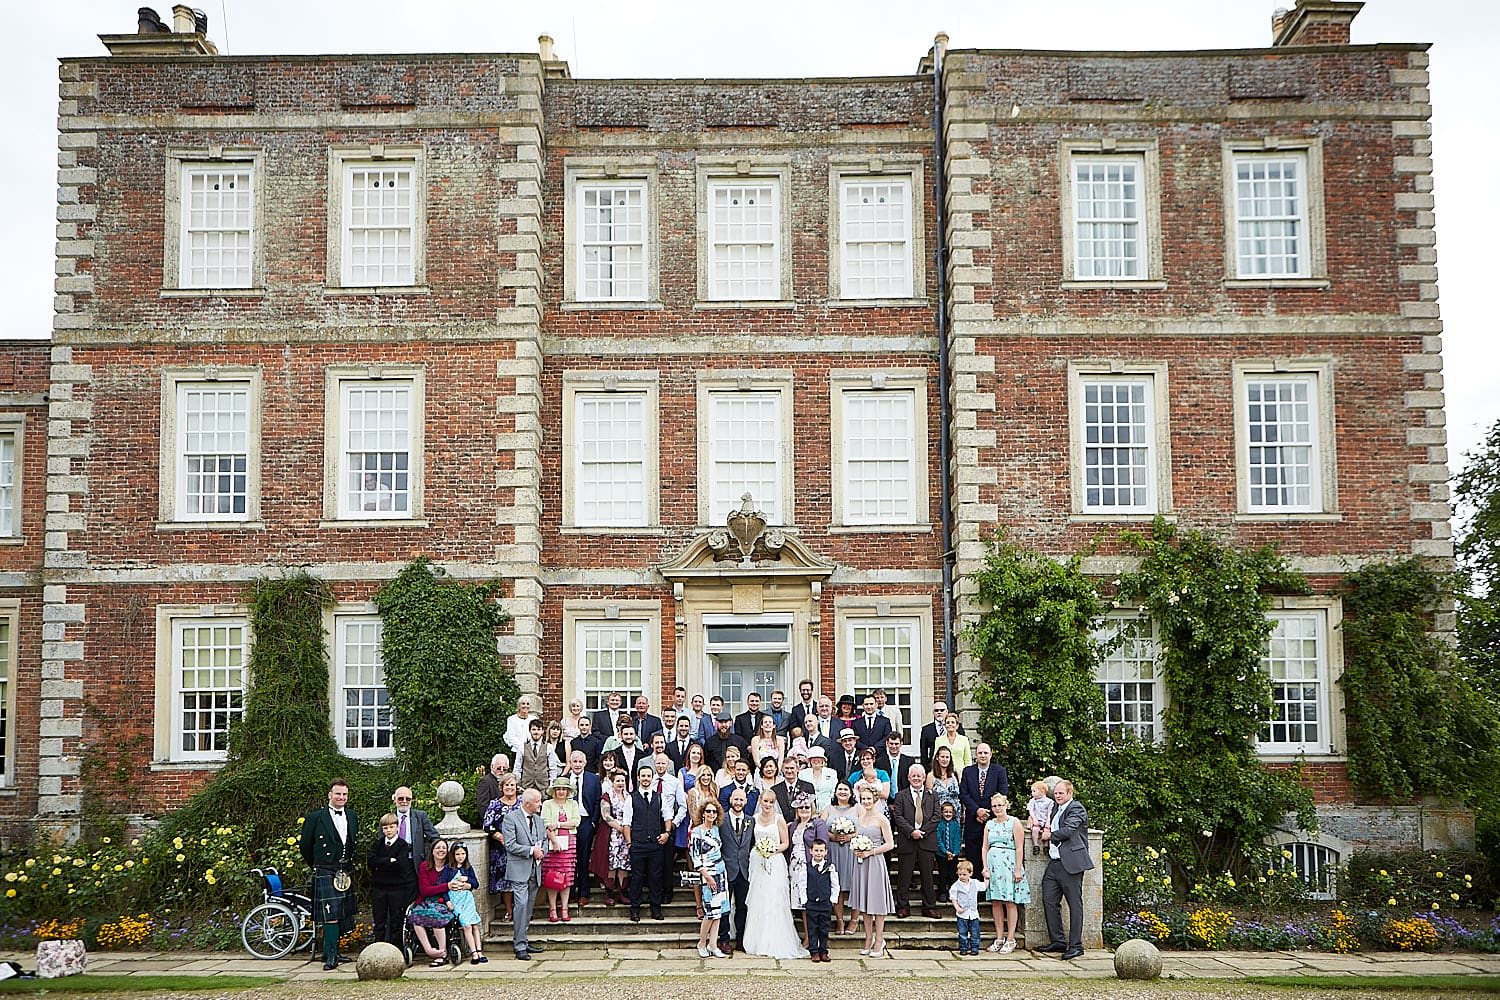 A Gunby Hall wedding at National Trust Wedding venue. The wedding party stand outside of the venue for photographs